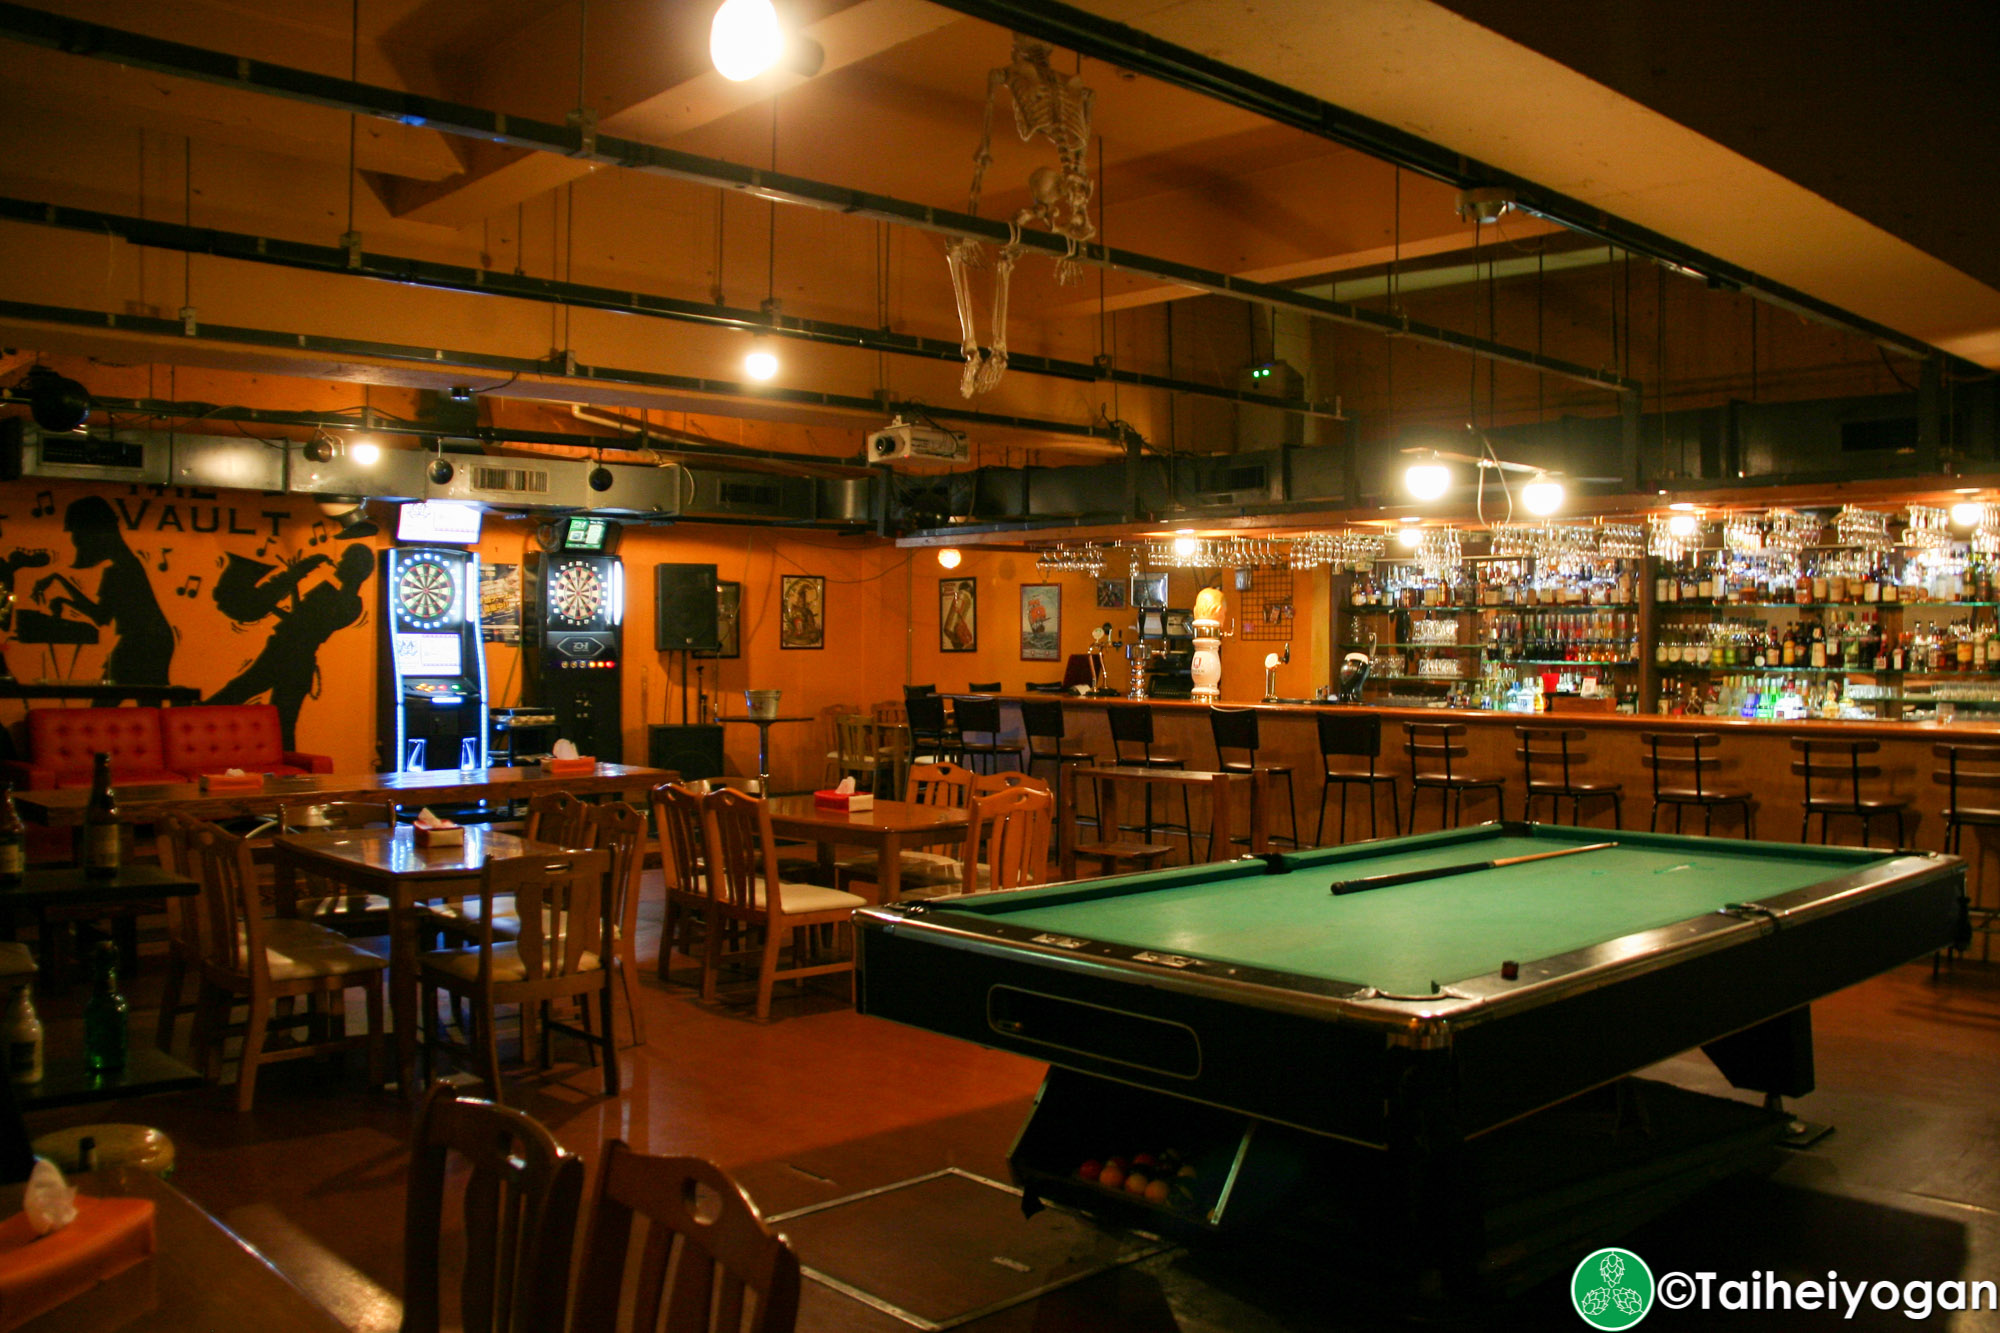 The Vault - Interior - Pool Table